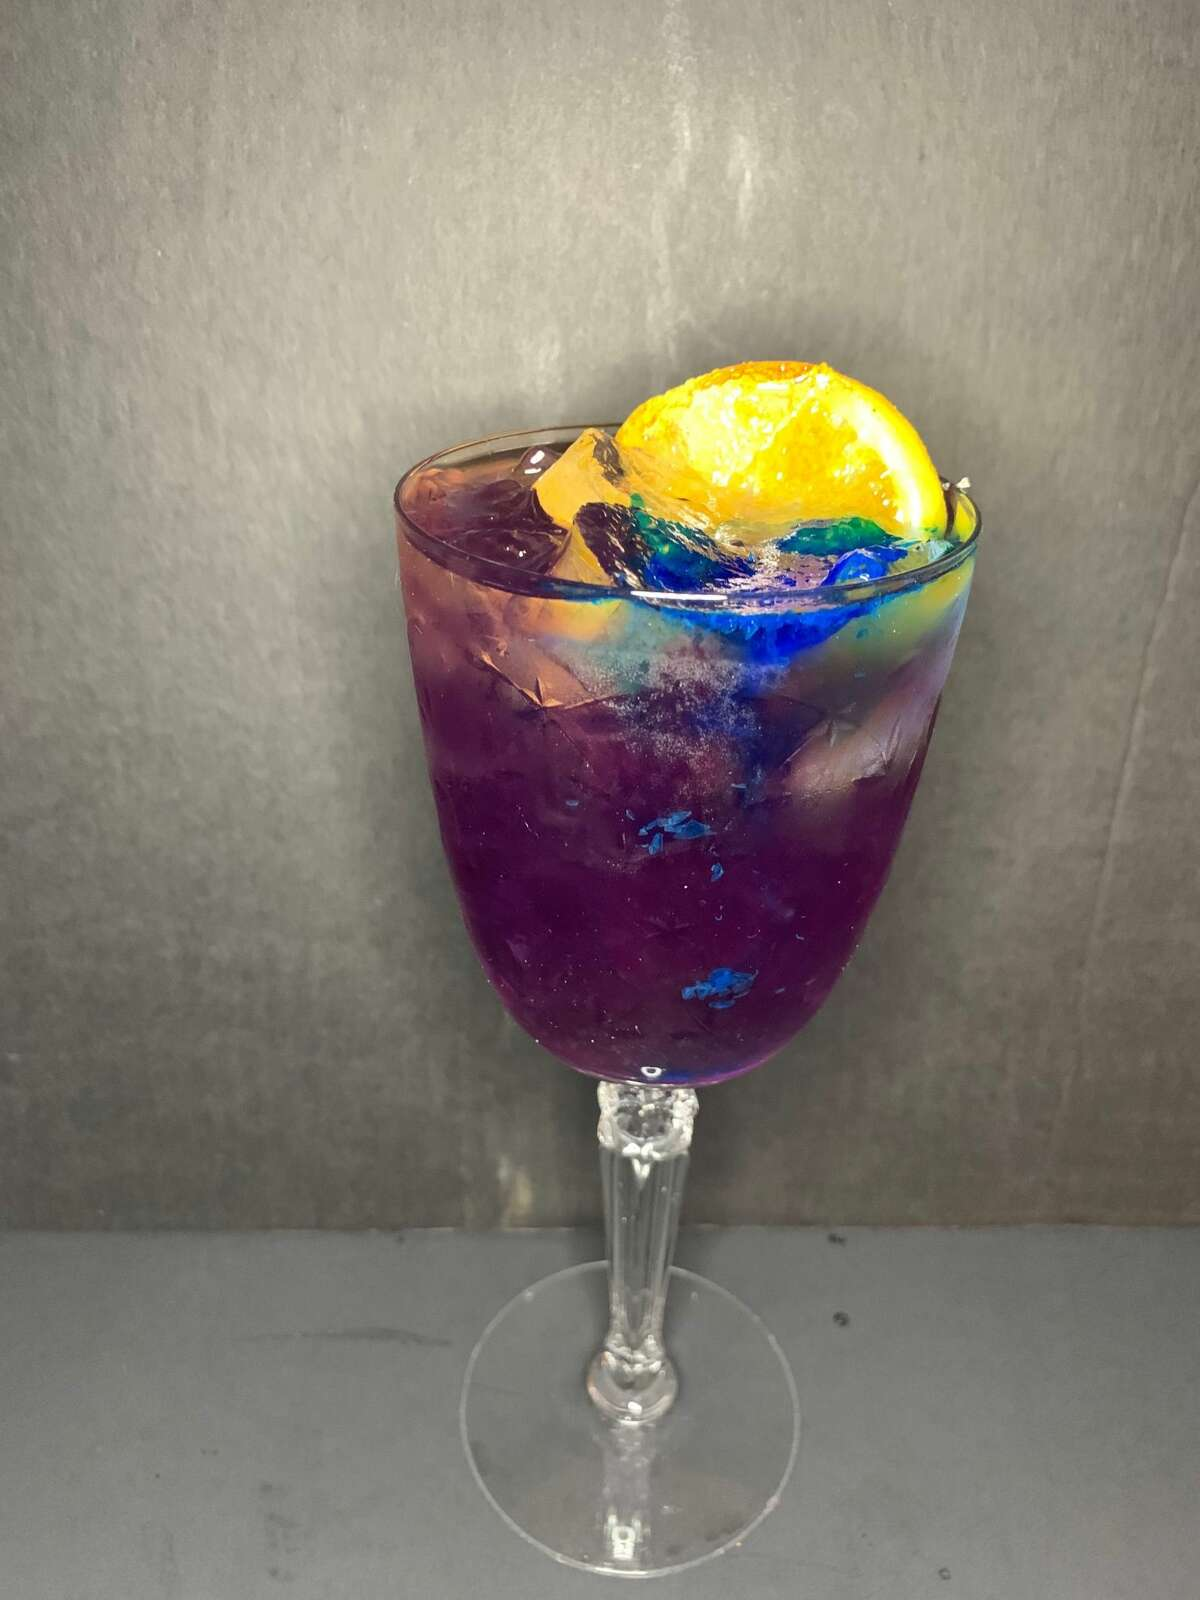 A color-changing Abracadabra cocktail, made with butterfly pea extract.